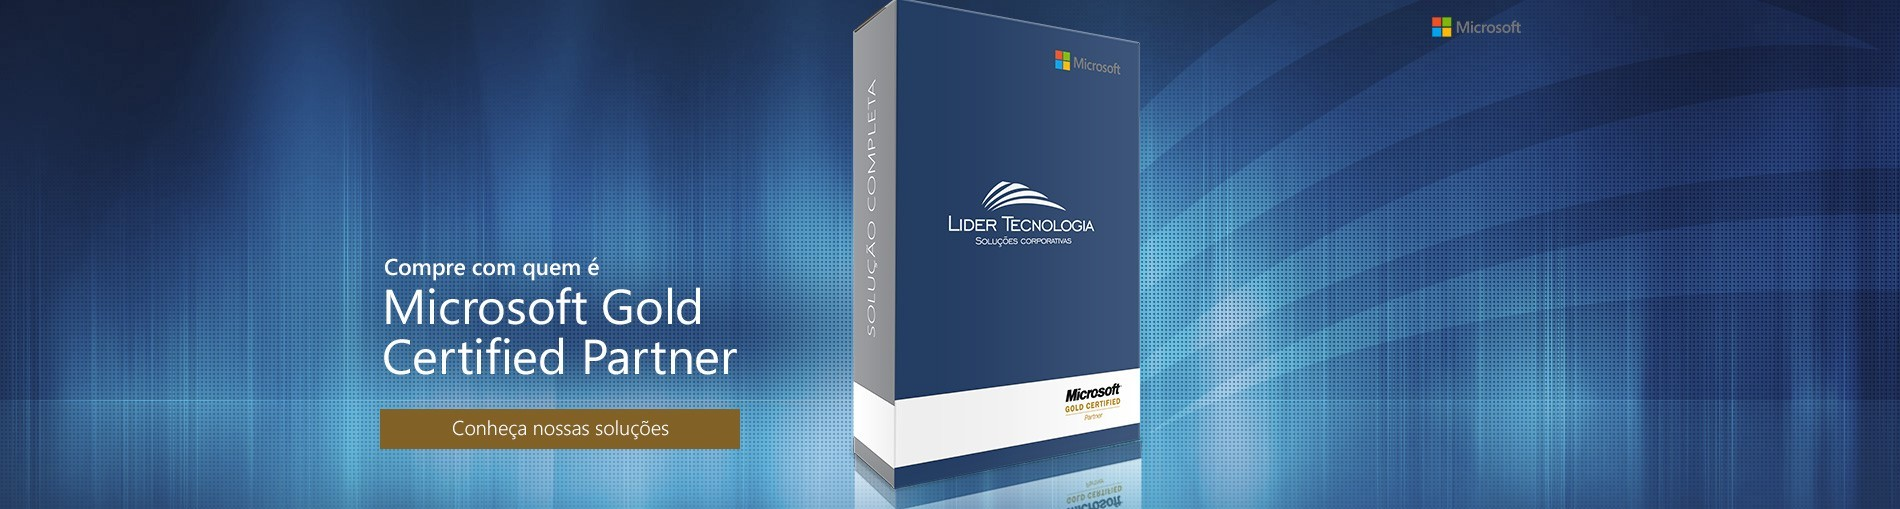 Lider Microsoft Gold Certified Partner